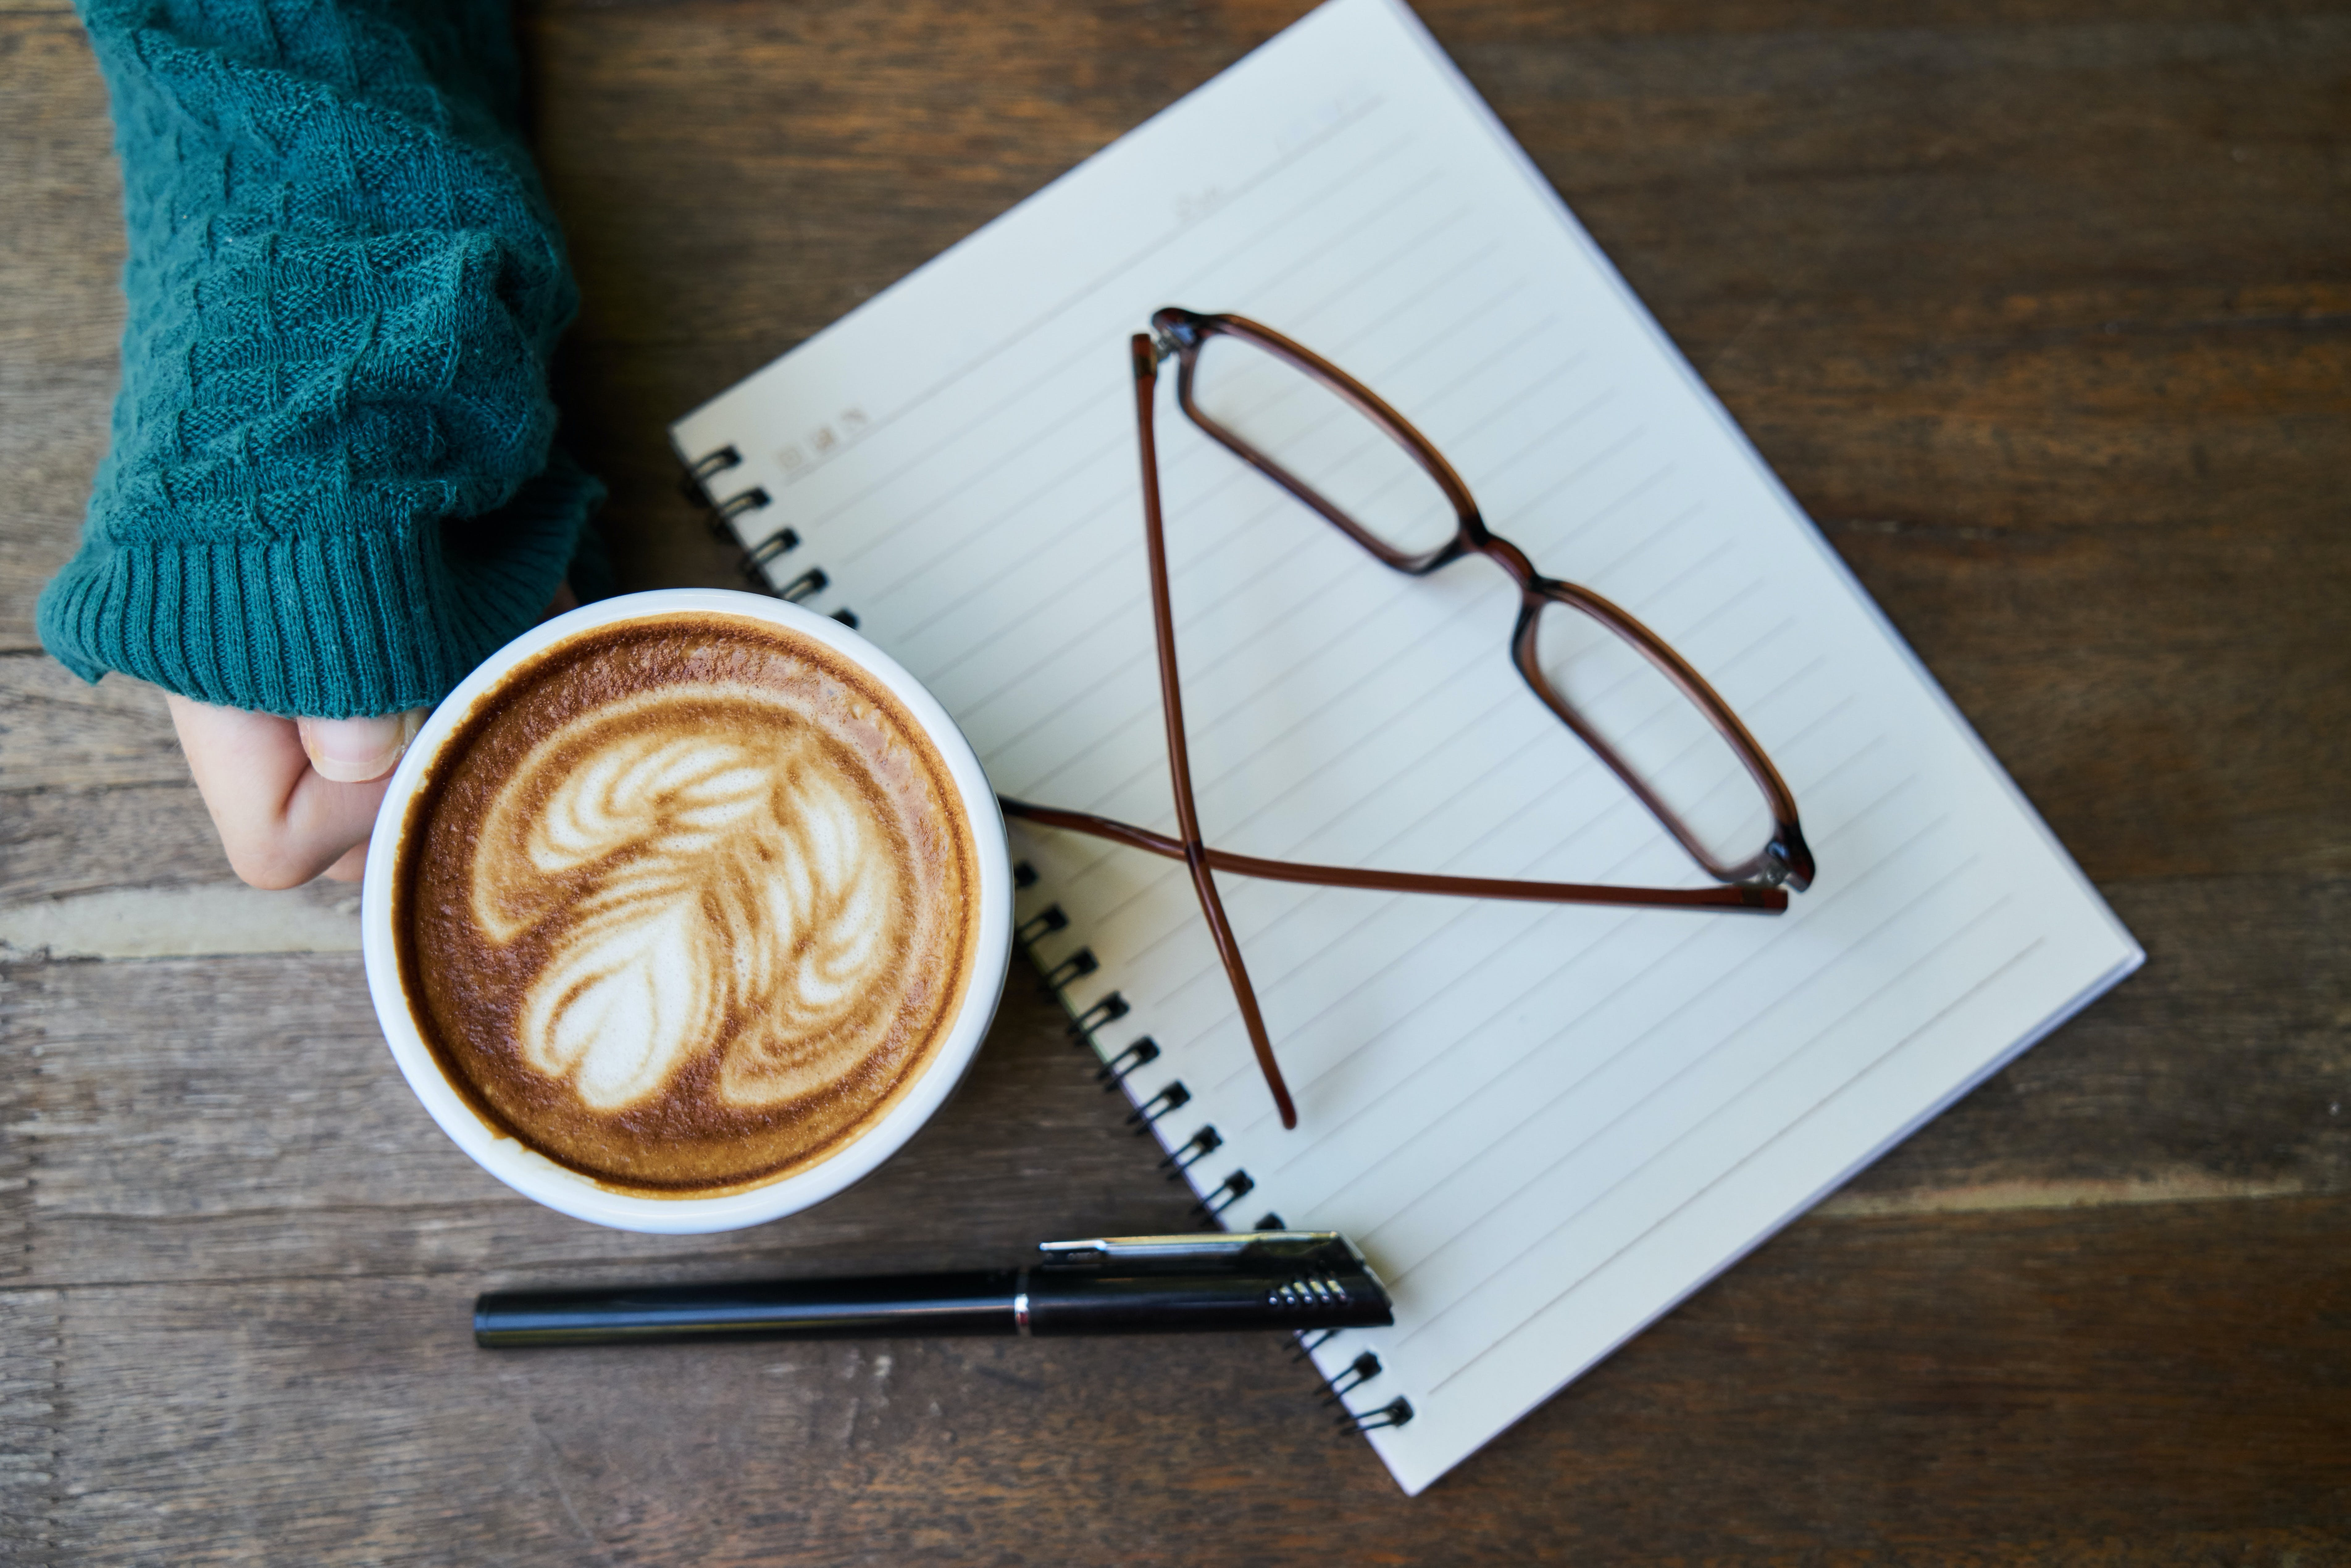 Latte Art in Cup Beside Paper and Pen